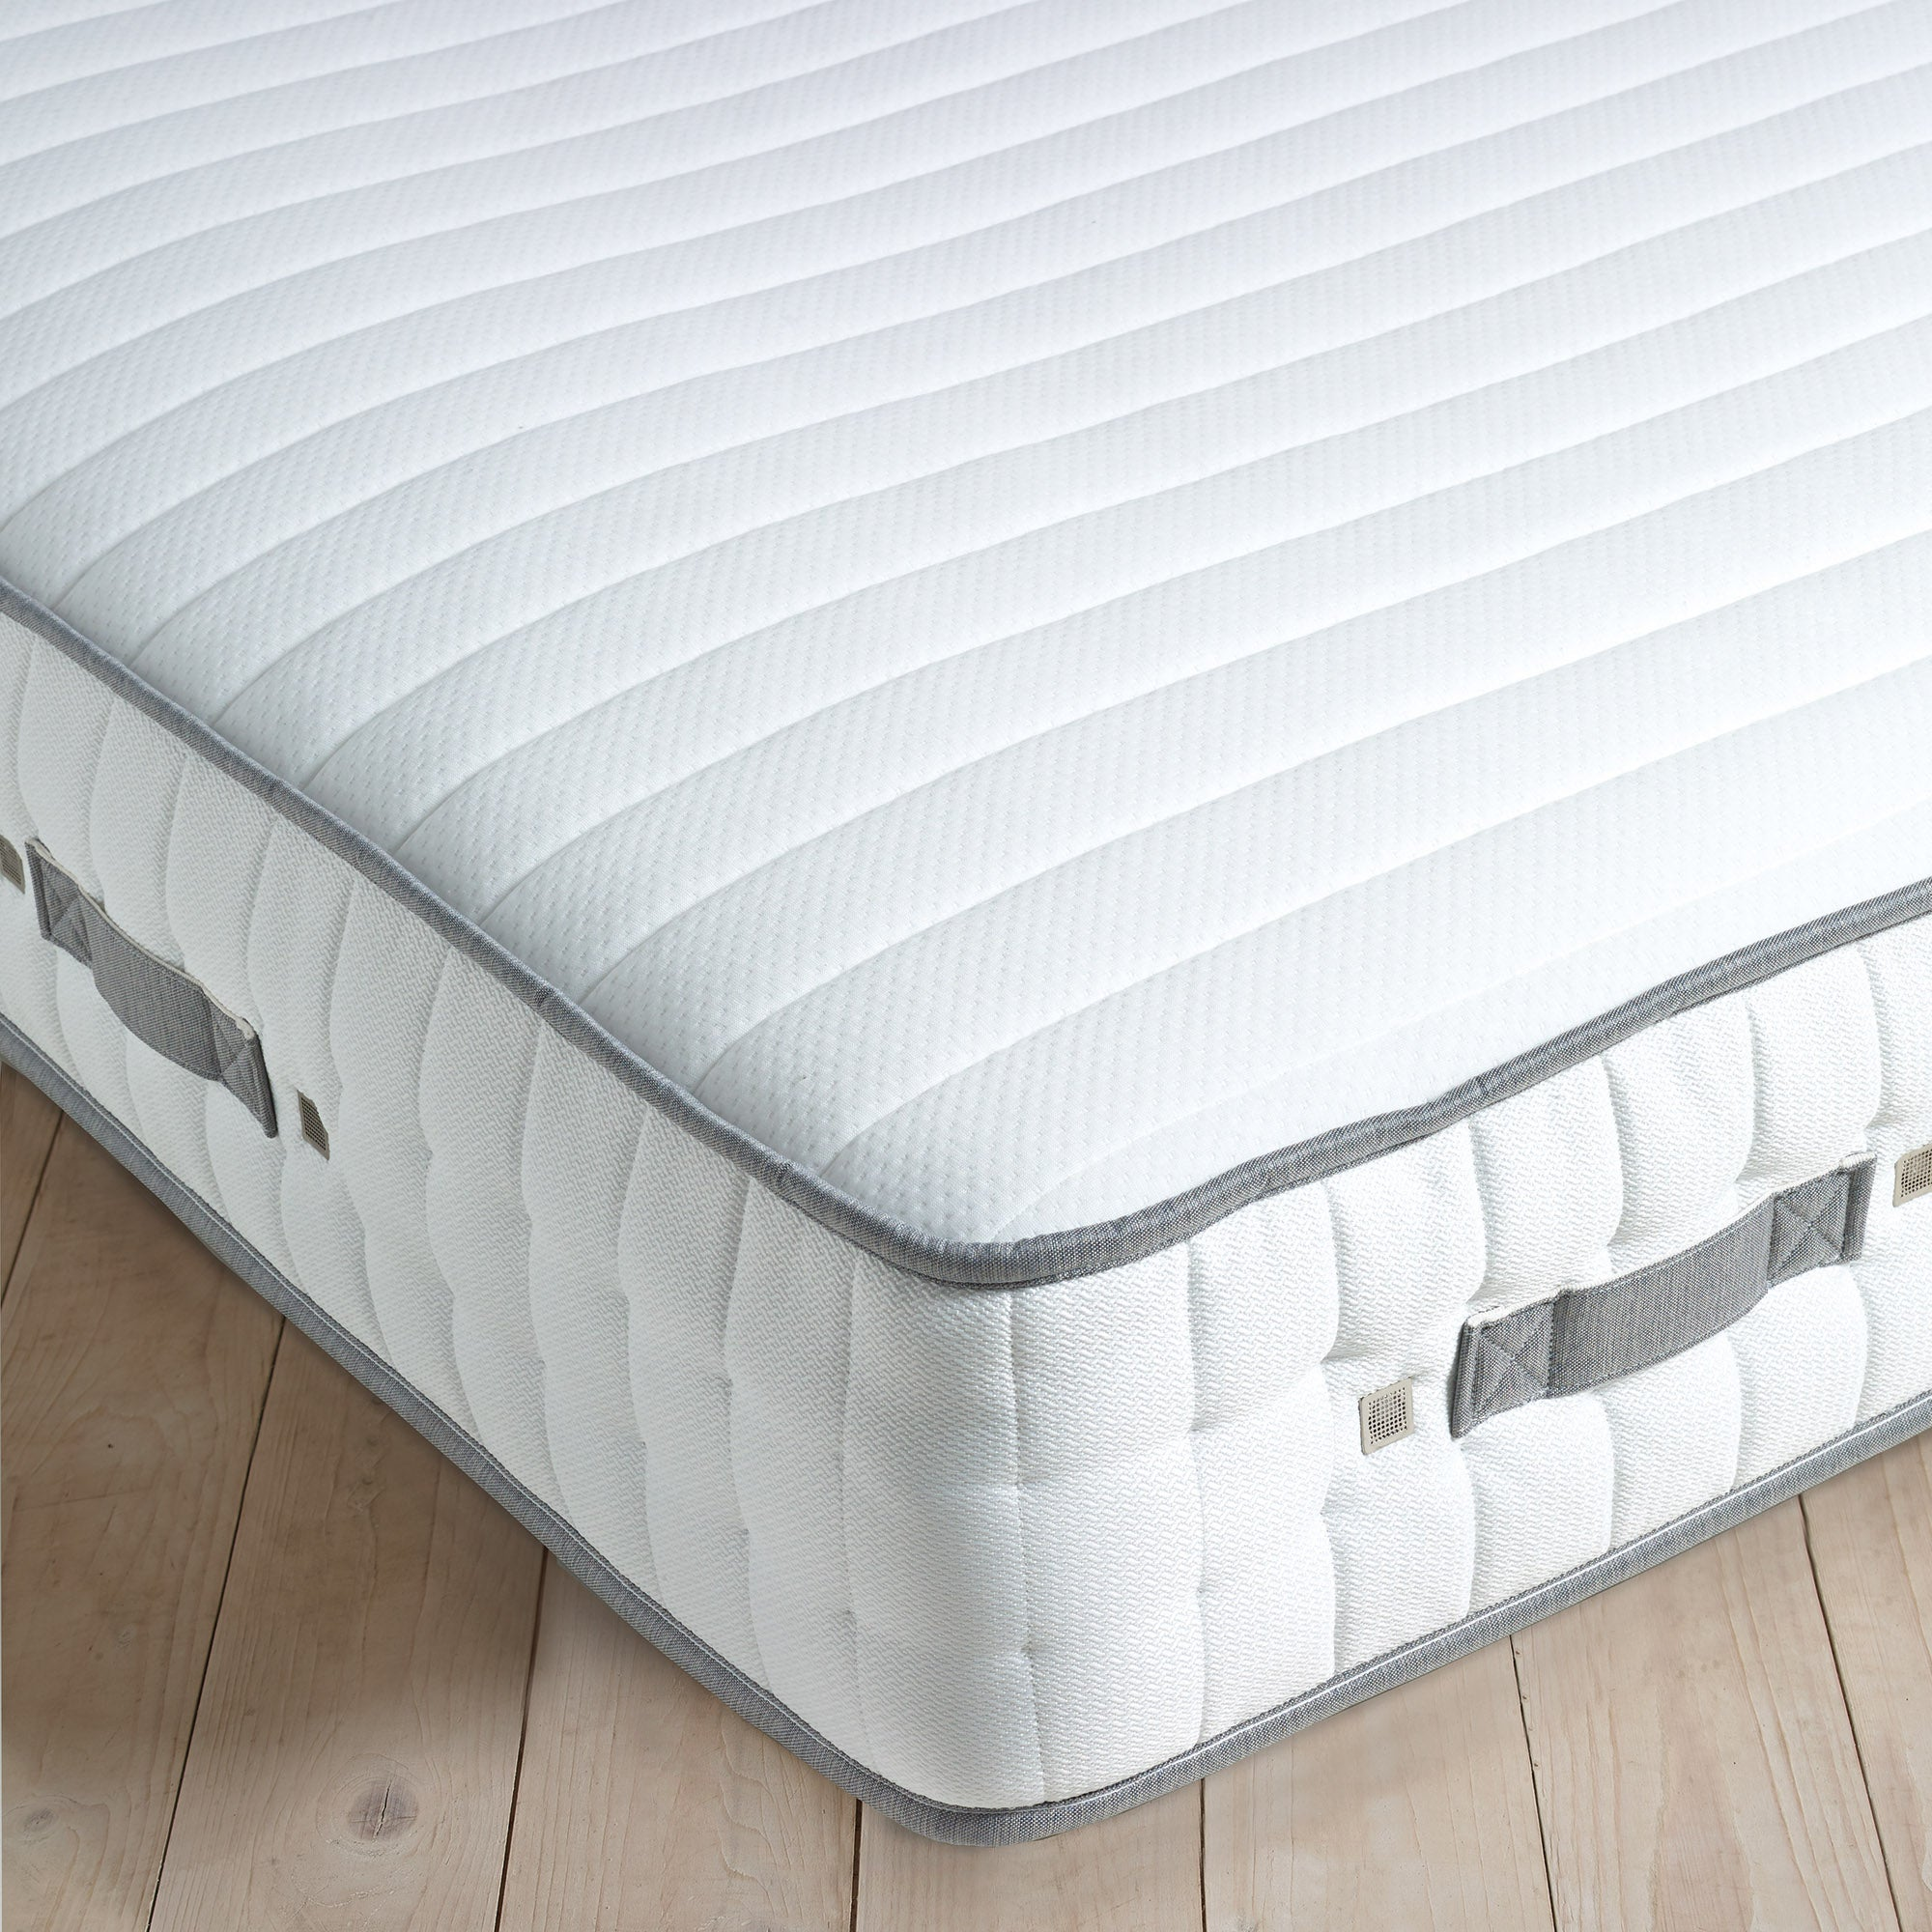 Image of Hotel 2000 Luxury Memory Firm Mattress White